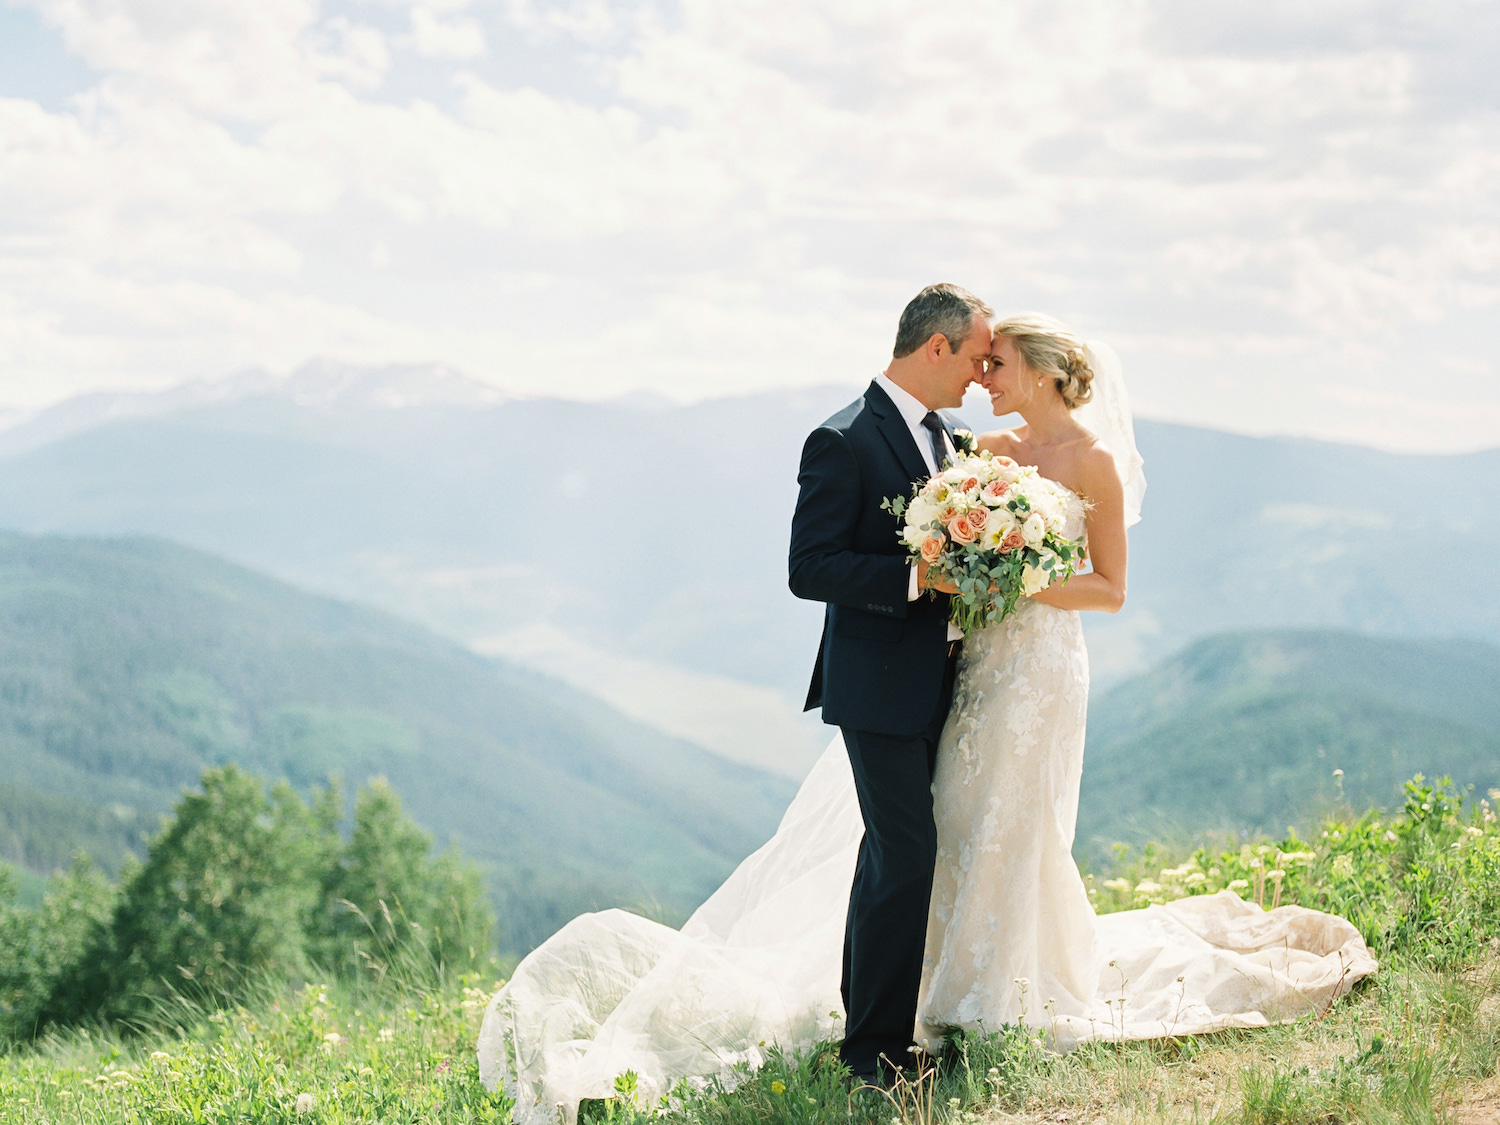 Bride and Groom wedding portraits taken on a mountain top in Vail, Colorado for a Summer wedding